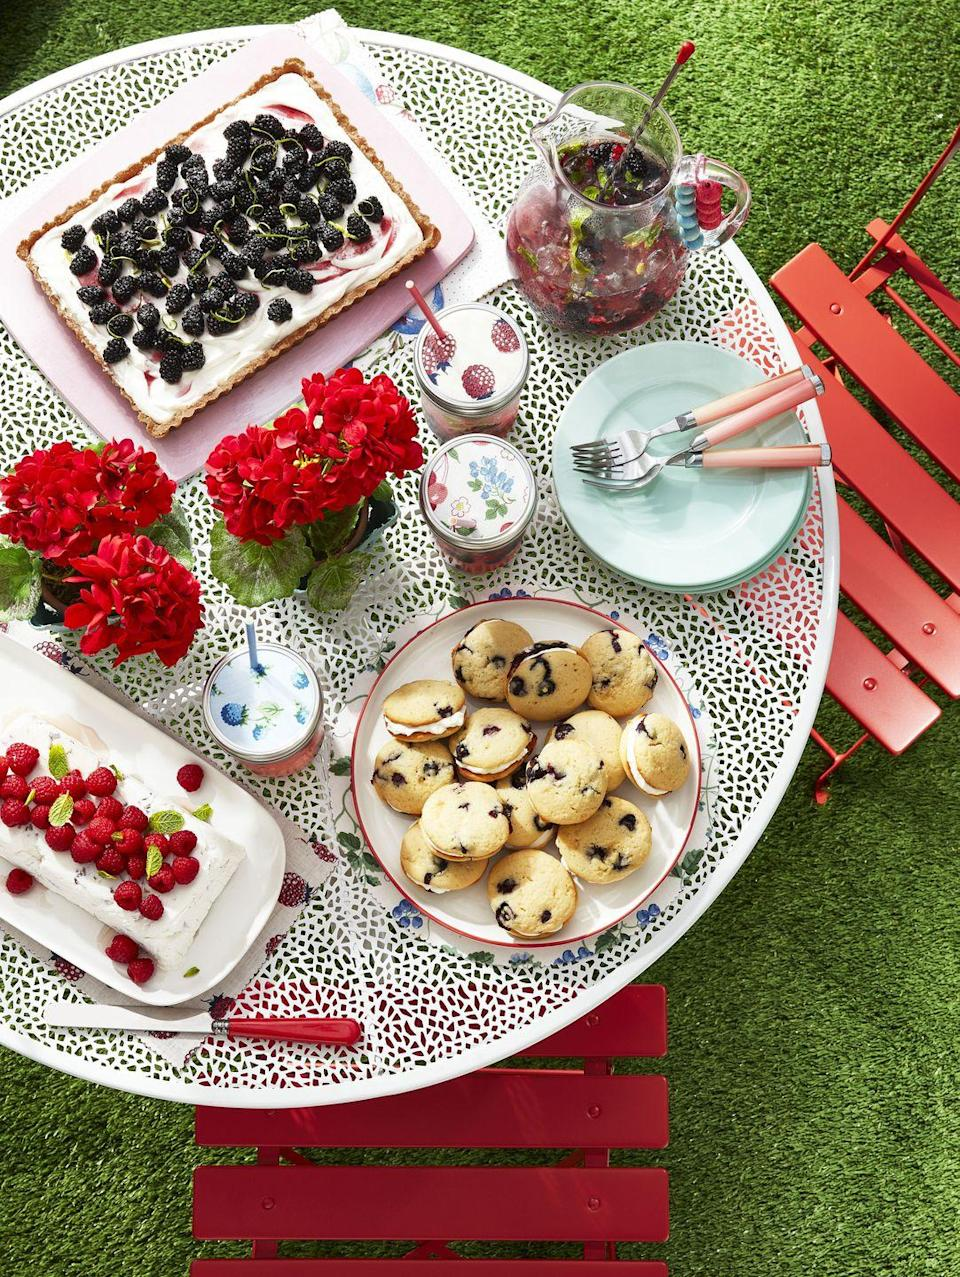 """<p>After visiting a berry picking farm, head home and turn the fruits of your labor into some fruity desserts. When the baking is done, head outside to enjoy the sweet treats—like blueberry whoopie pies— under blue skies. </p><p><strong><a href=""""https://www.countryliving.com/food-drinks/a32352585/blueberry-whoopie-pies/"""" rel=""""nofollow noopener"""" target=""""_blank"""" data-ylk=""""slk:Get the recipe"""" class=""""link rapid-noclick-resp"""">Get the recipe</a>.</strong></p>"""